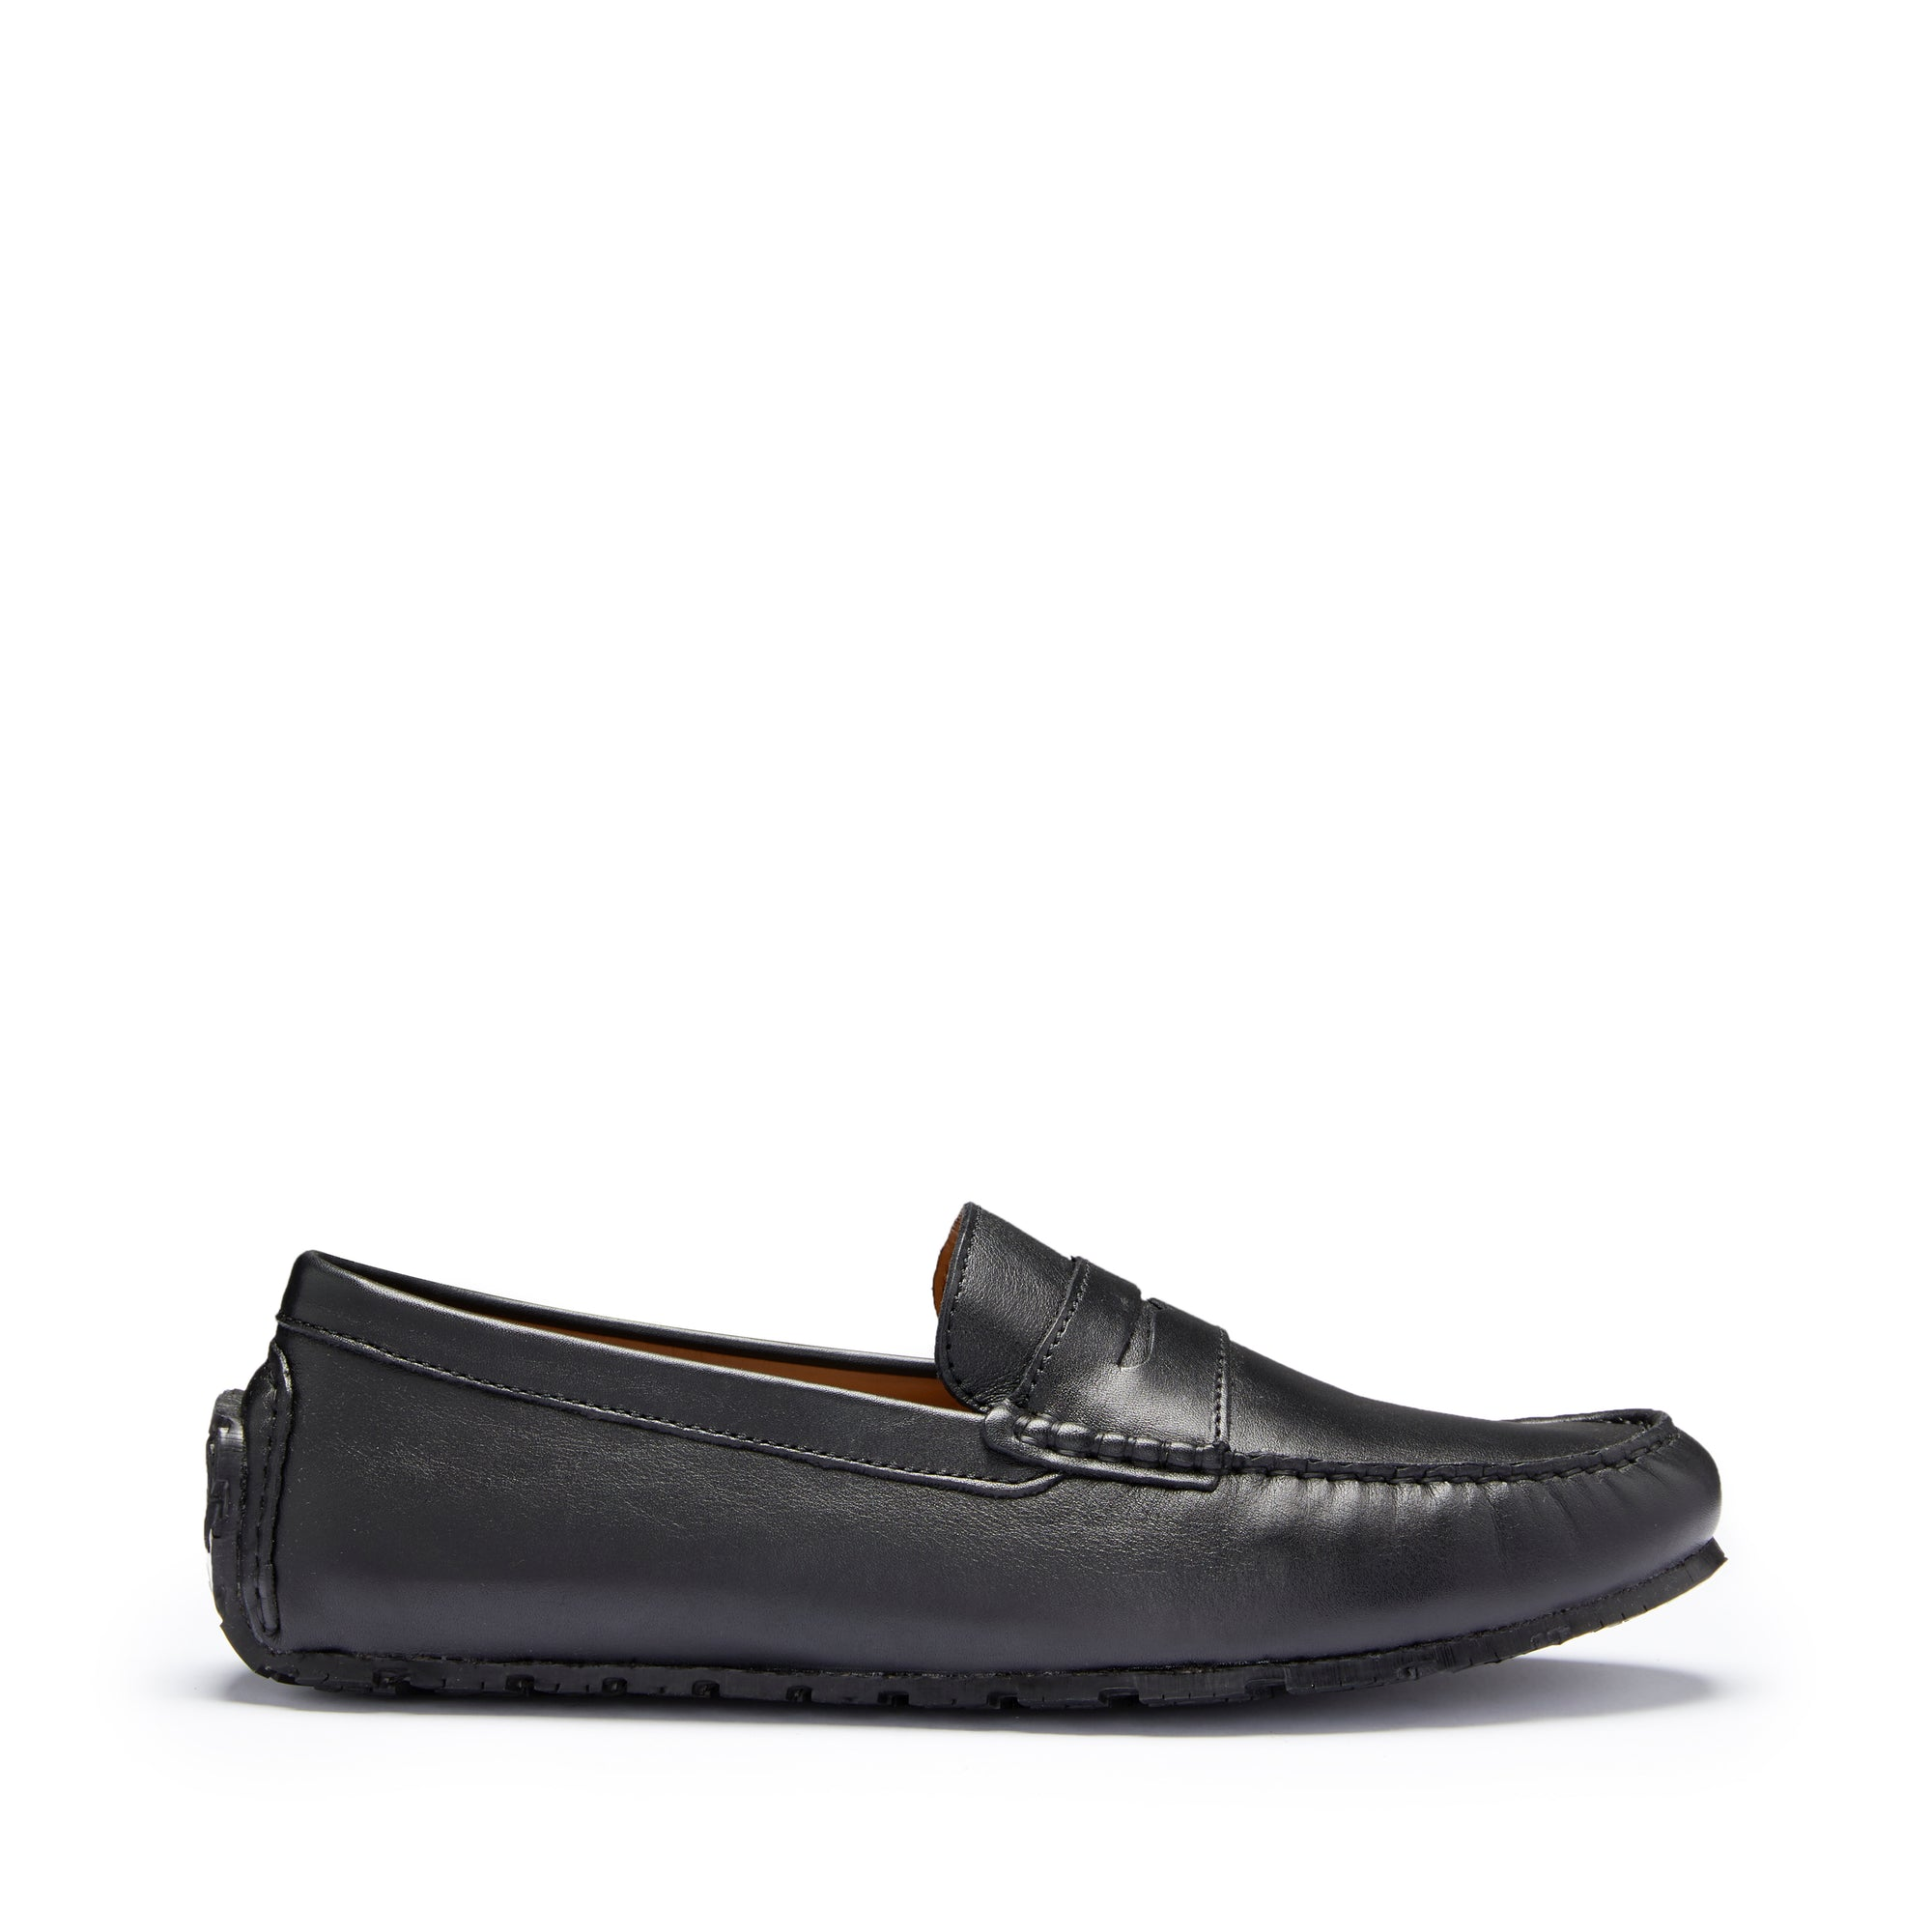 Tyre Sole Penny Driving Loafers, black leather